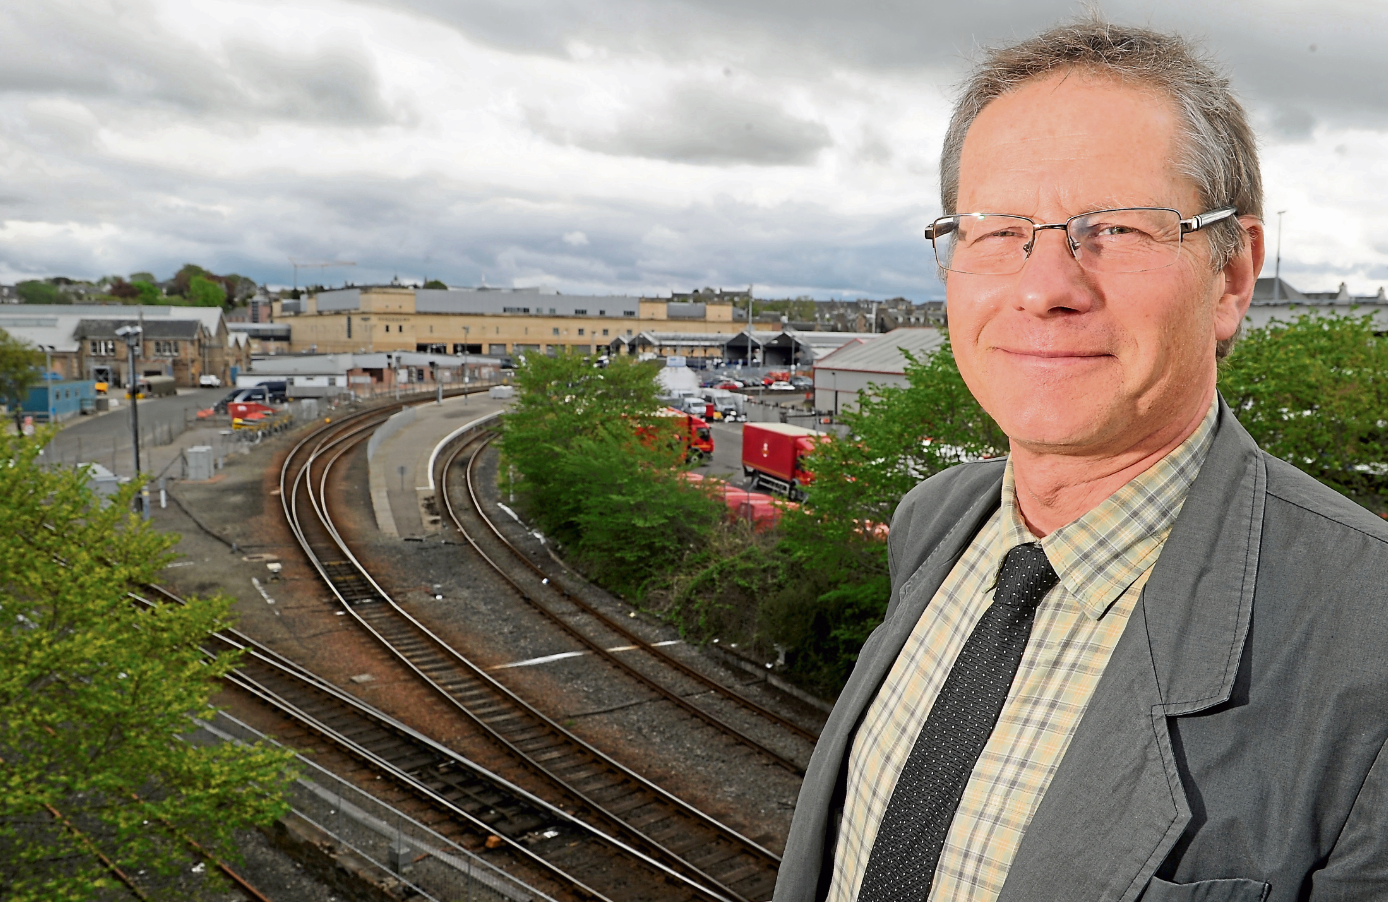 """Frank Roach,manager at north transport partnership Hitrans, said there is a lot of interest being generated in """"creating something really significant"""" in the city centre"""